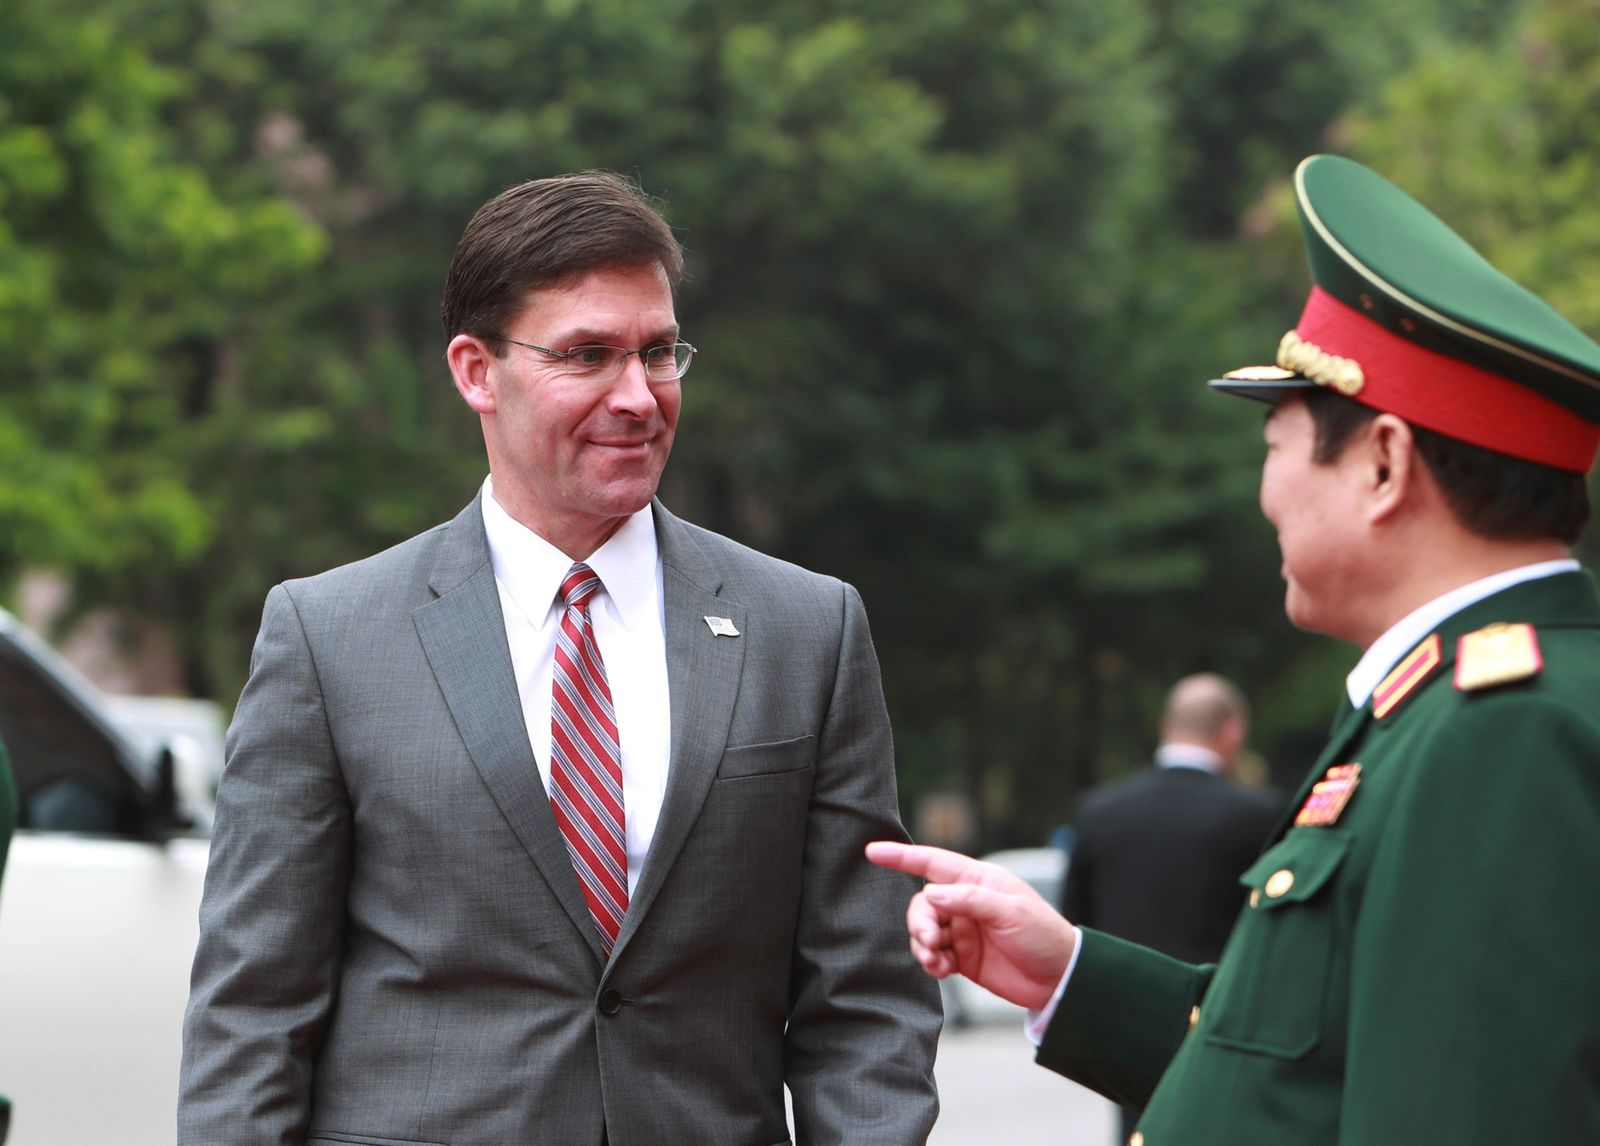 U.S. Defense Secretary Mark Esper, left, and Vietnamese Defense Minister Ngo Xuan Lich talk before a meeting in Hanoi, Vietnam Wednesday, Nov. 20, 2019. (AP Photo/Hau Dinh)